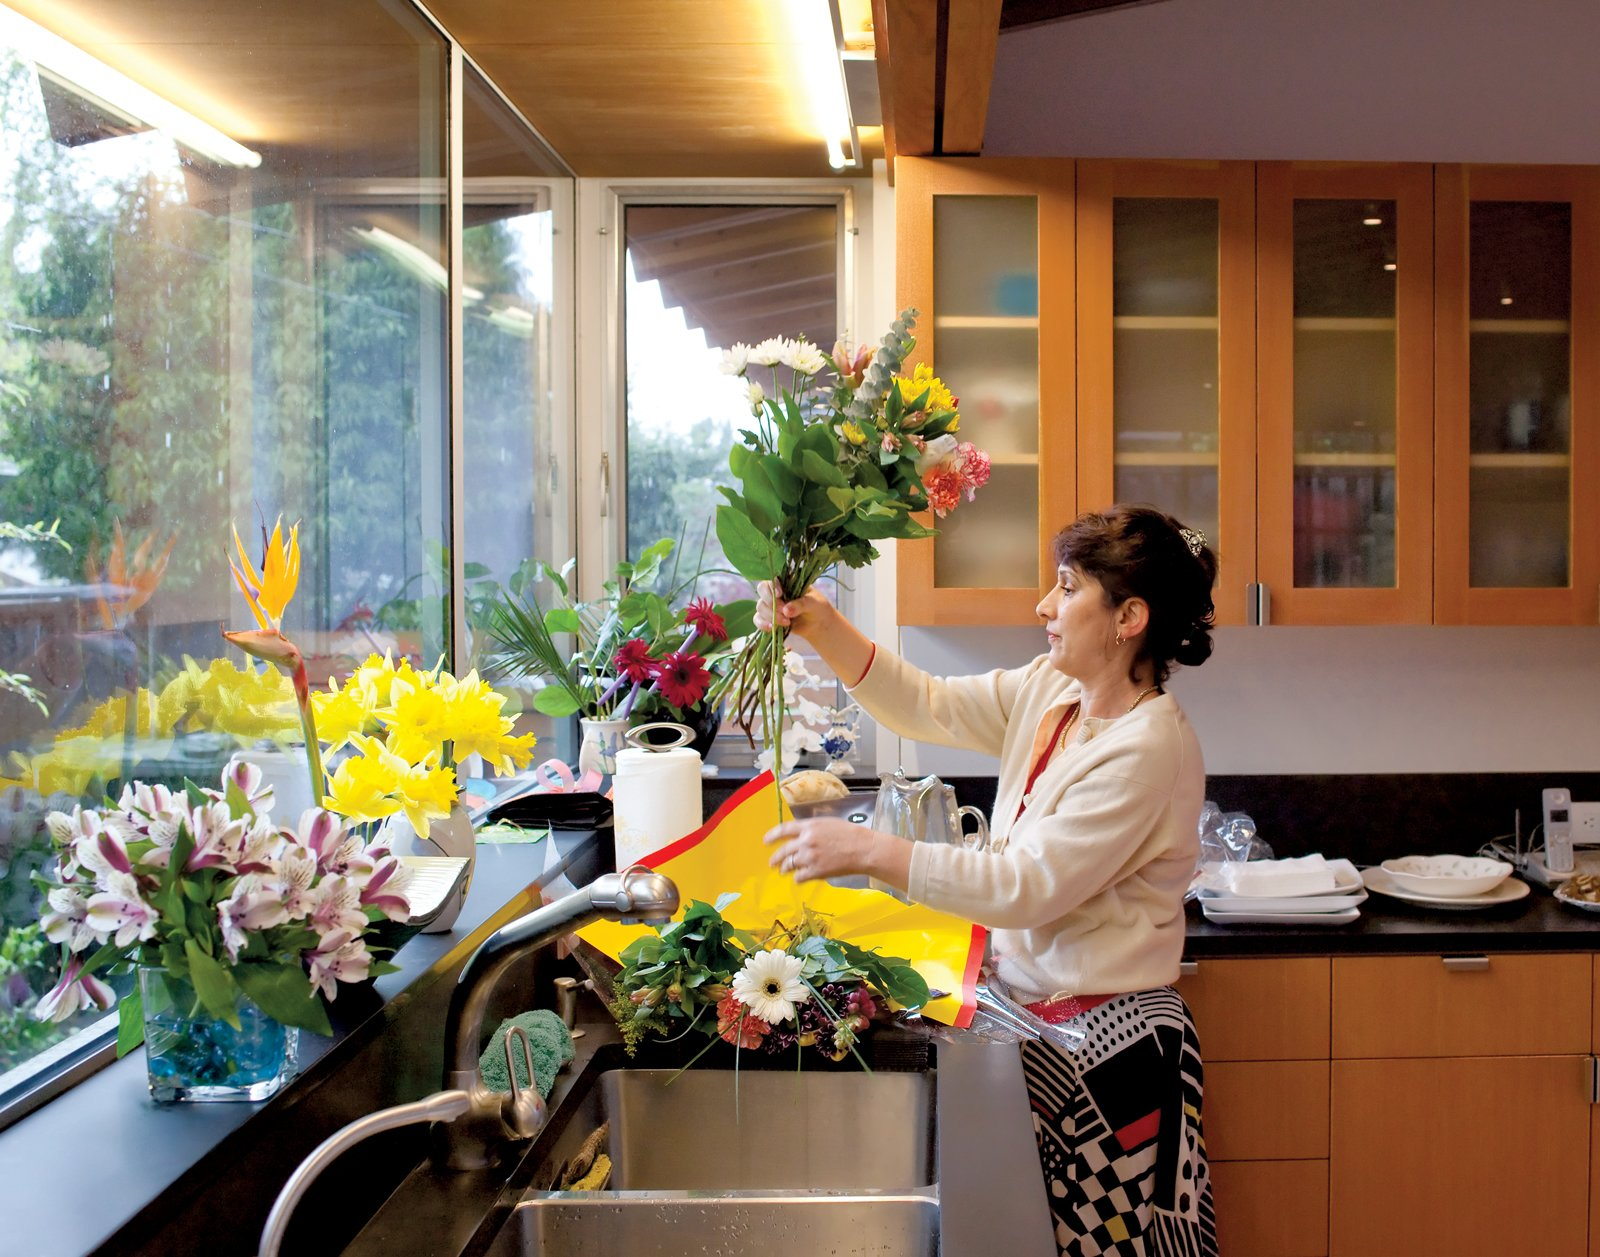 Kitchen and Wood Cabinet Fashandi arranges flowers and greenery for Persian New Year, which is a celebration of spring.  Photo 1 of 13 in 15 Flower Arrangements That Will Brighten Your Home on Valentine's Day from Family Matters